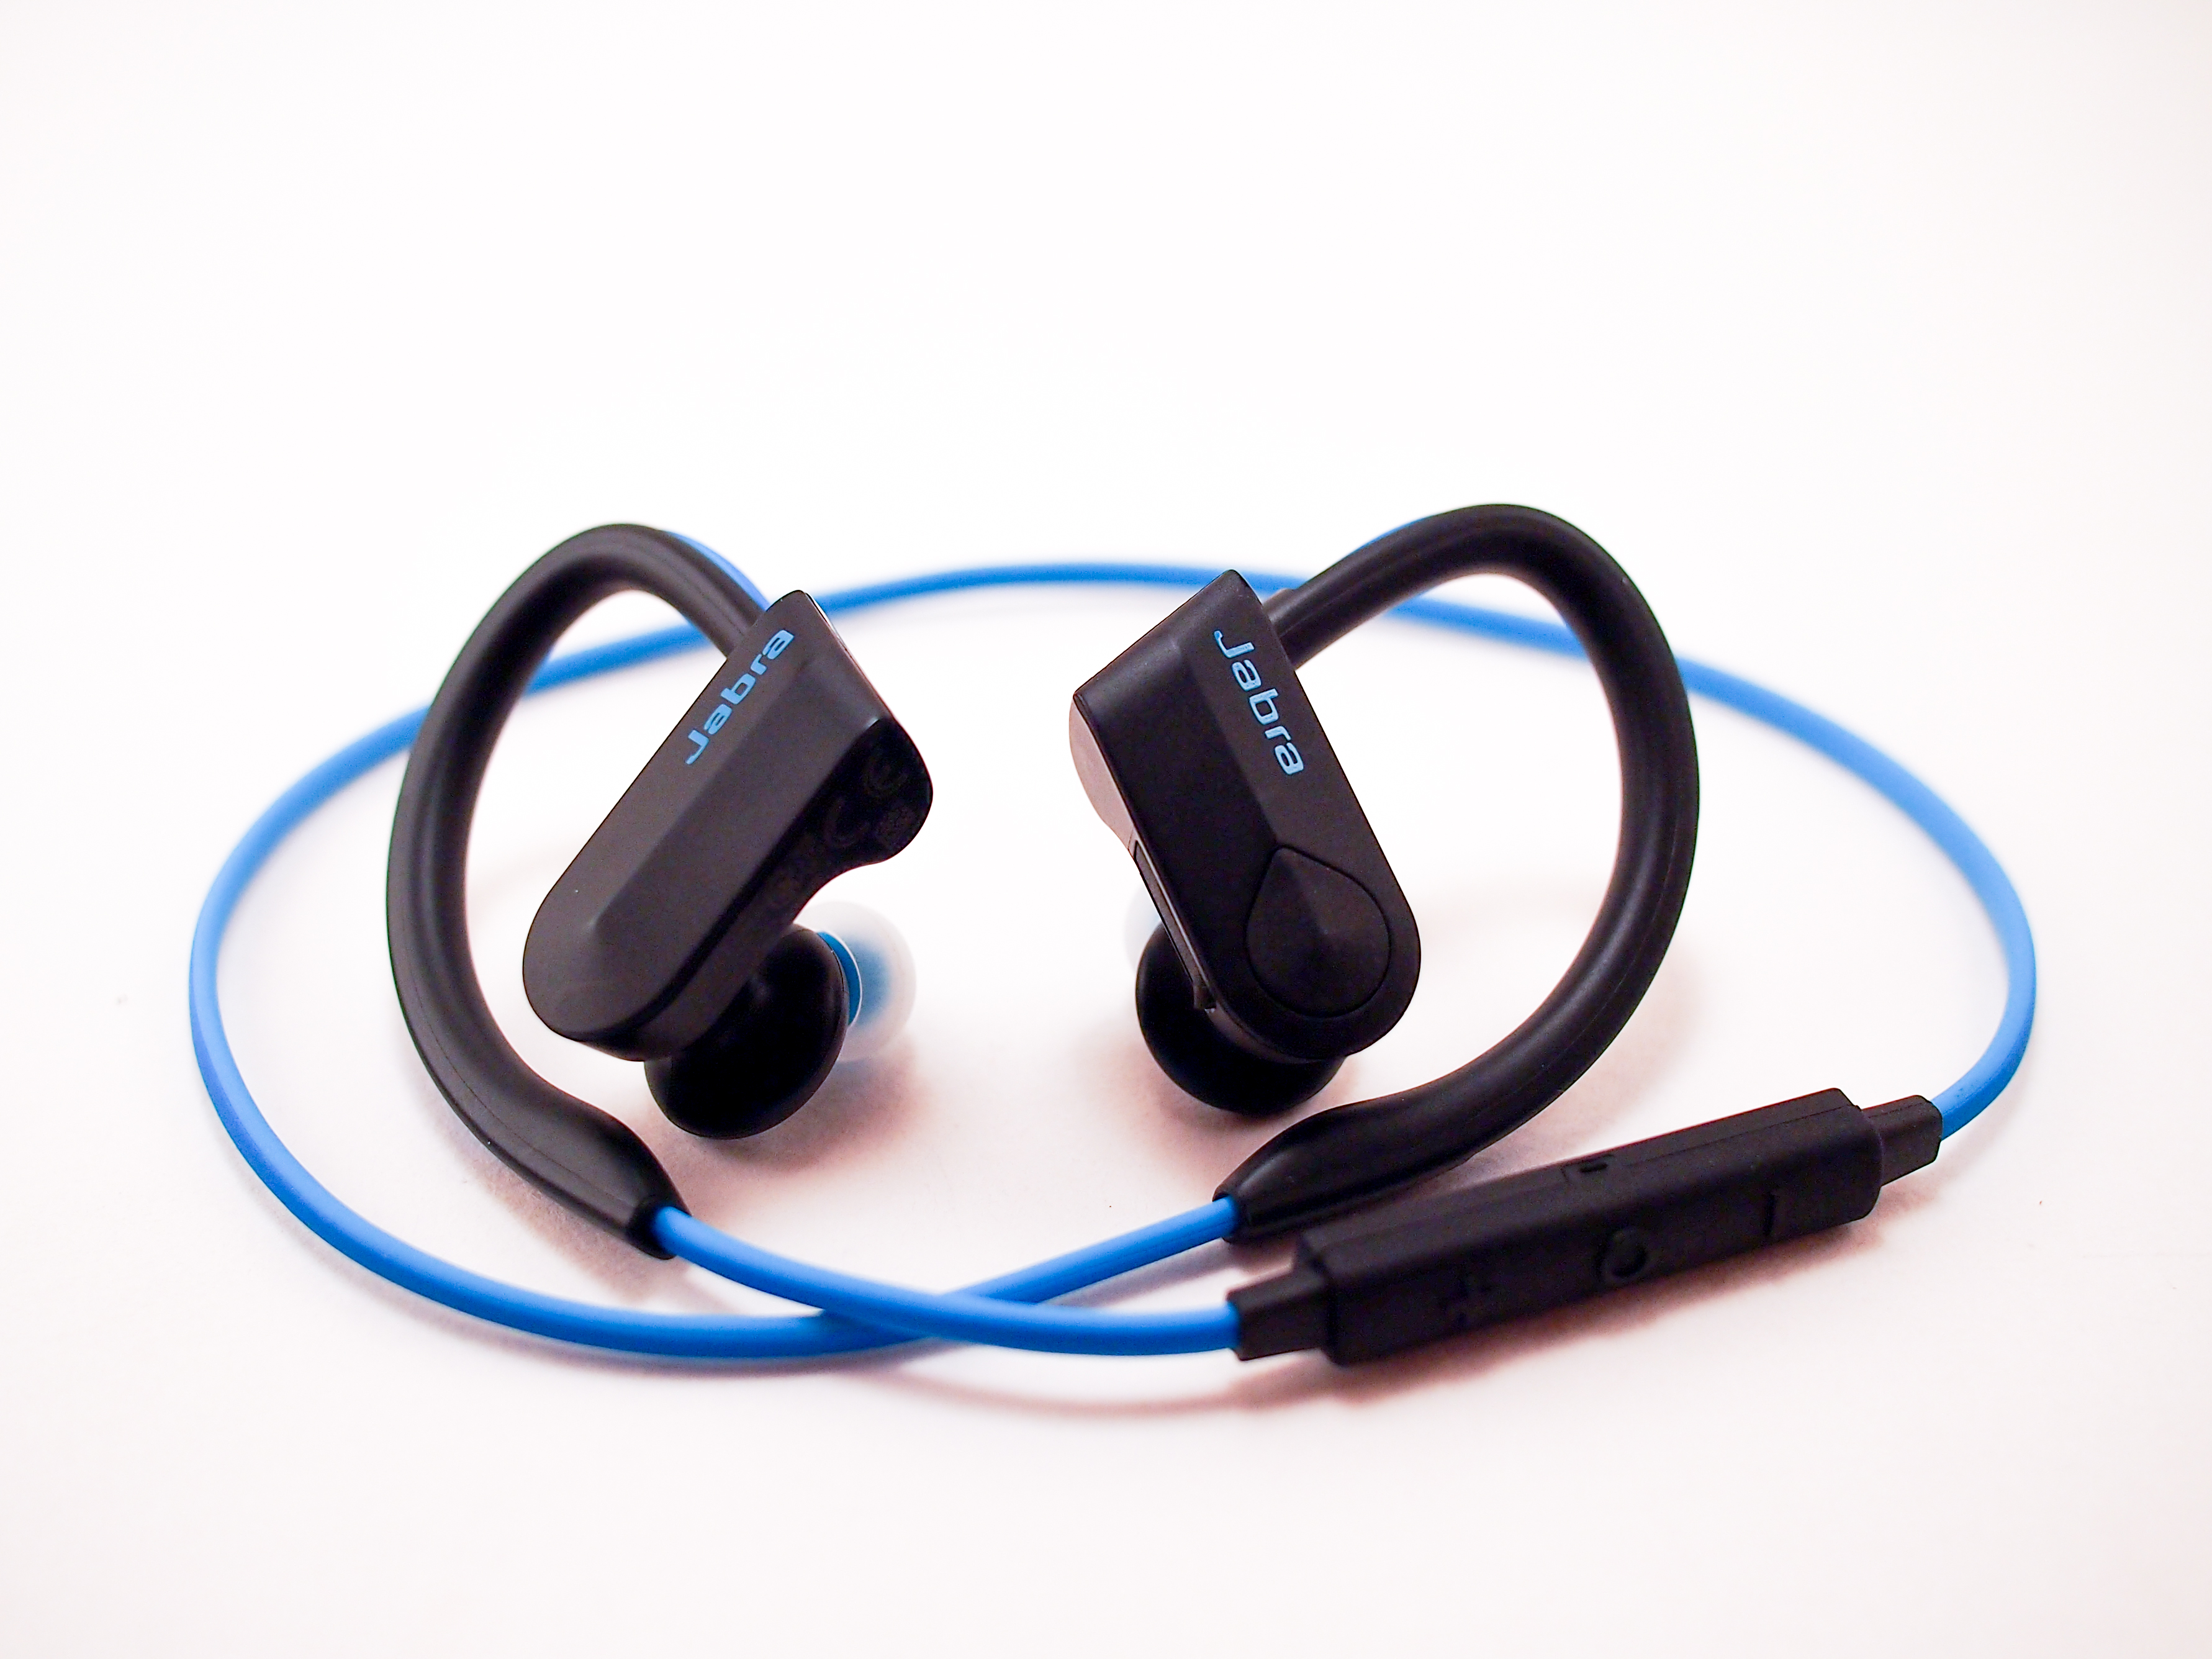 Jabra Sport Pace Wireless Earphones It S Time To Cut The Cord Review G Style Magazine